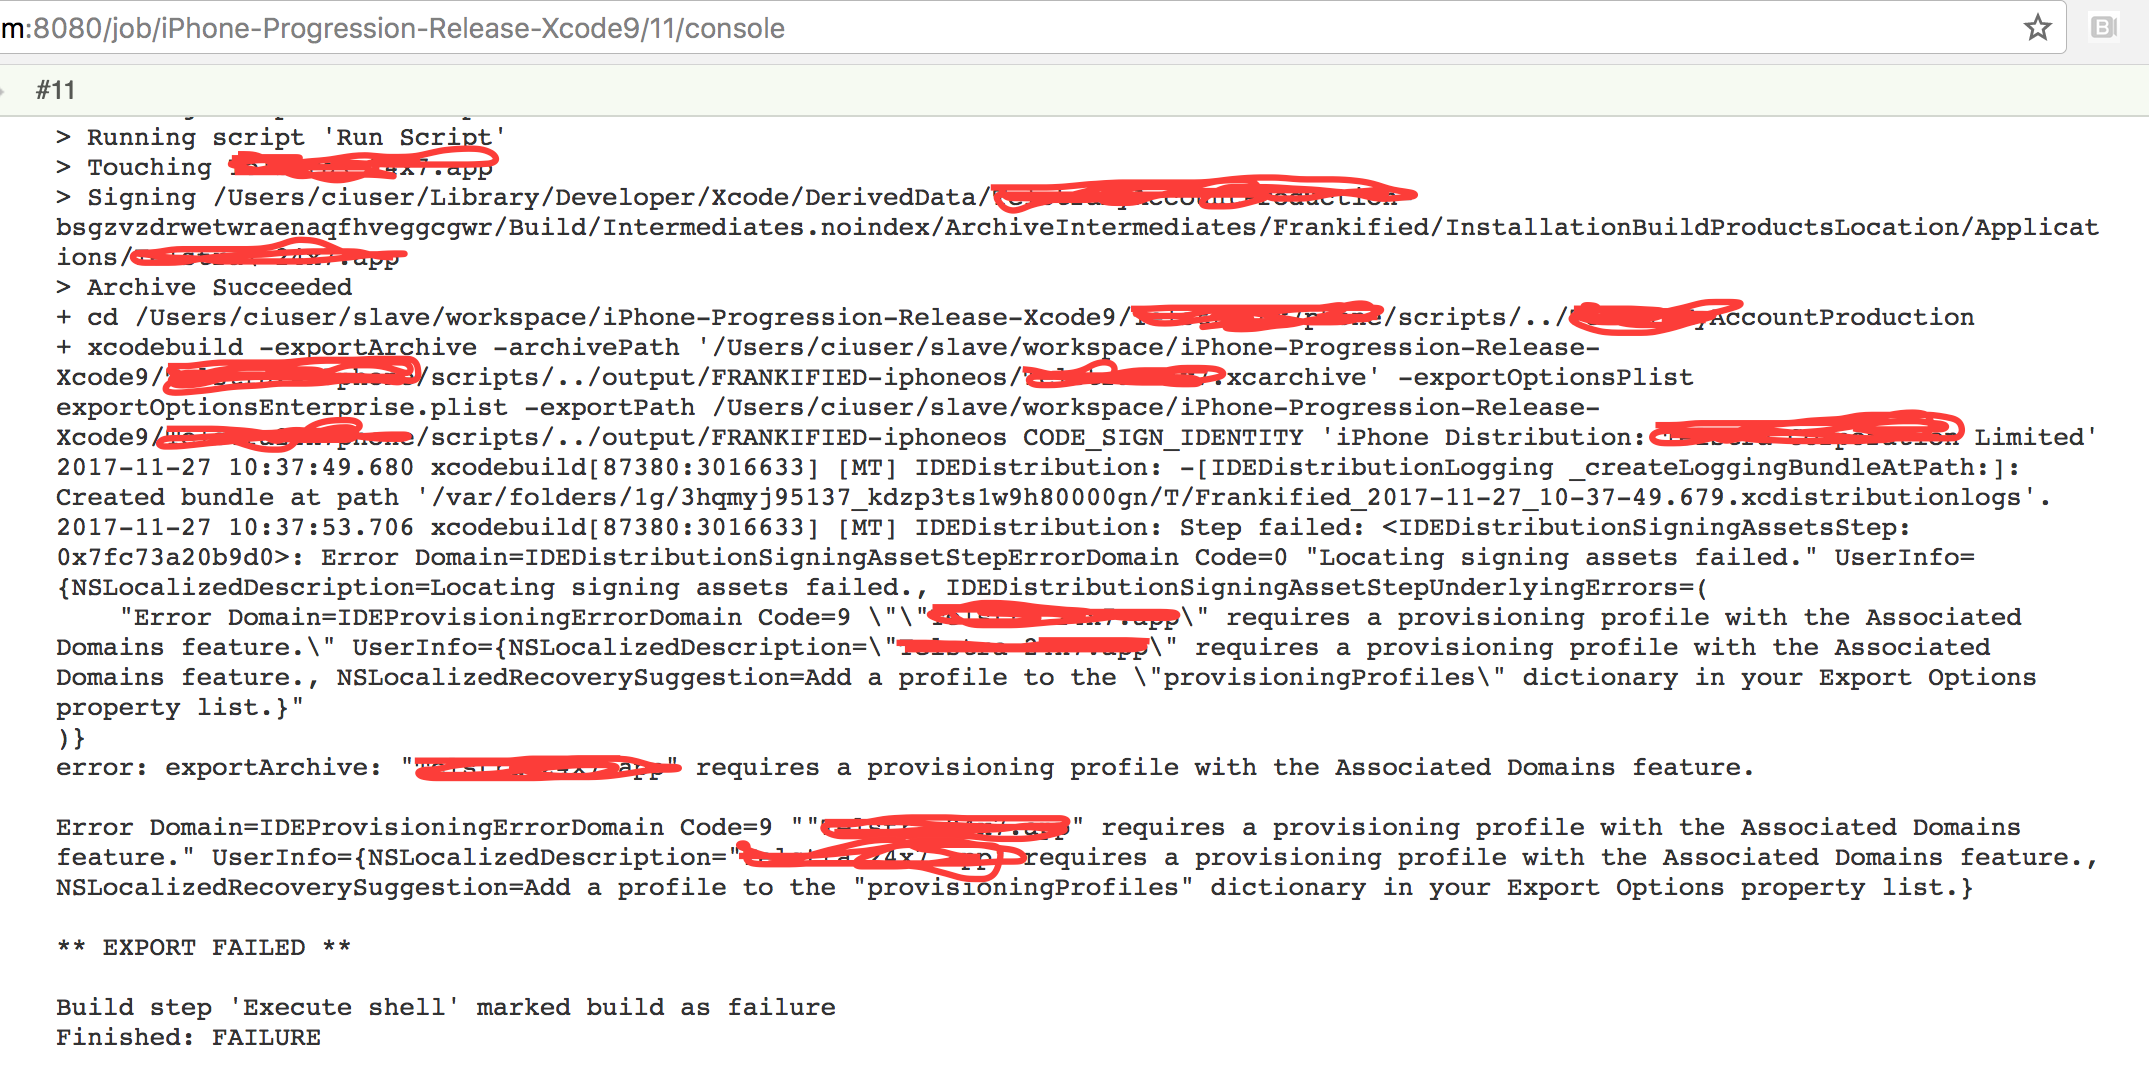 JENKINS-45509] Xcode 9 requires provisioning profile to be